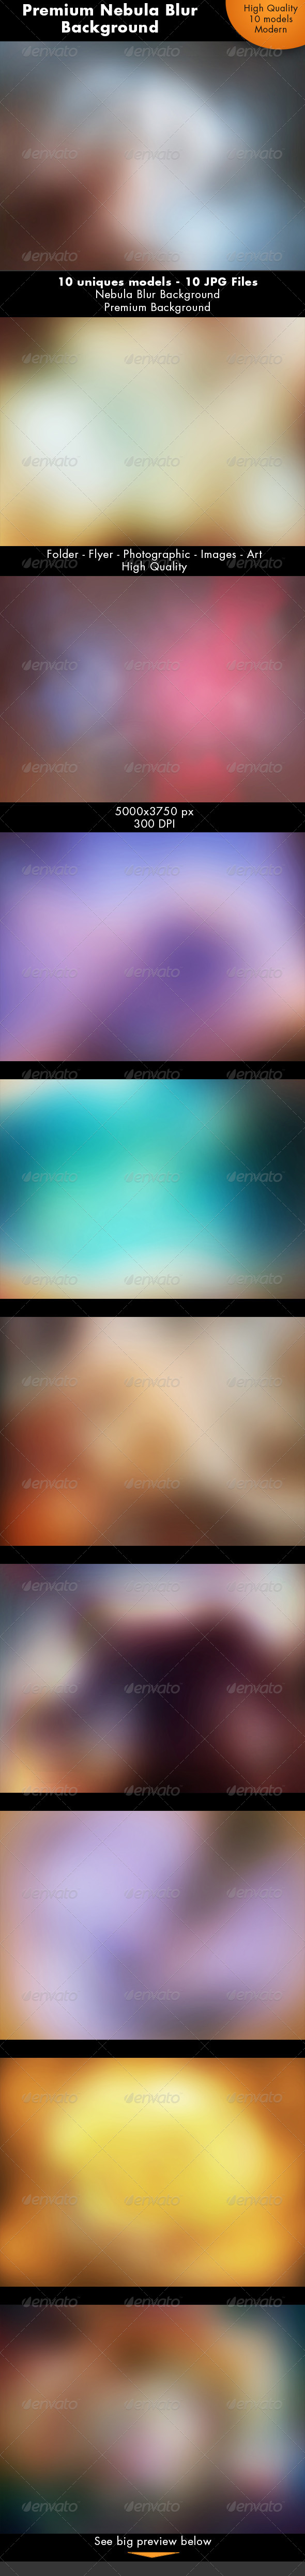 Nebula Blur Background - Abstract Backgrounds